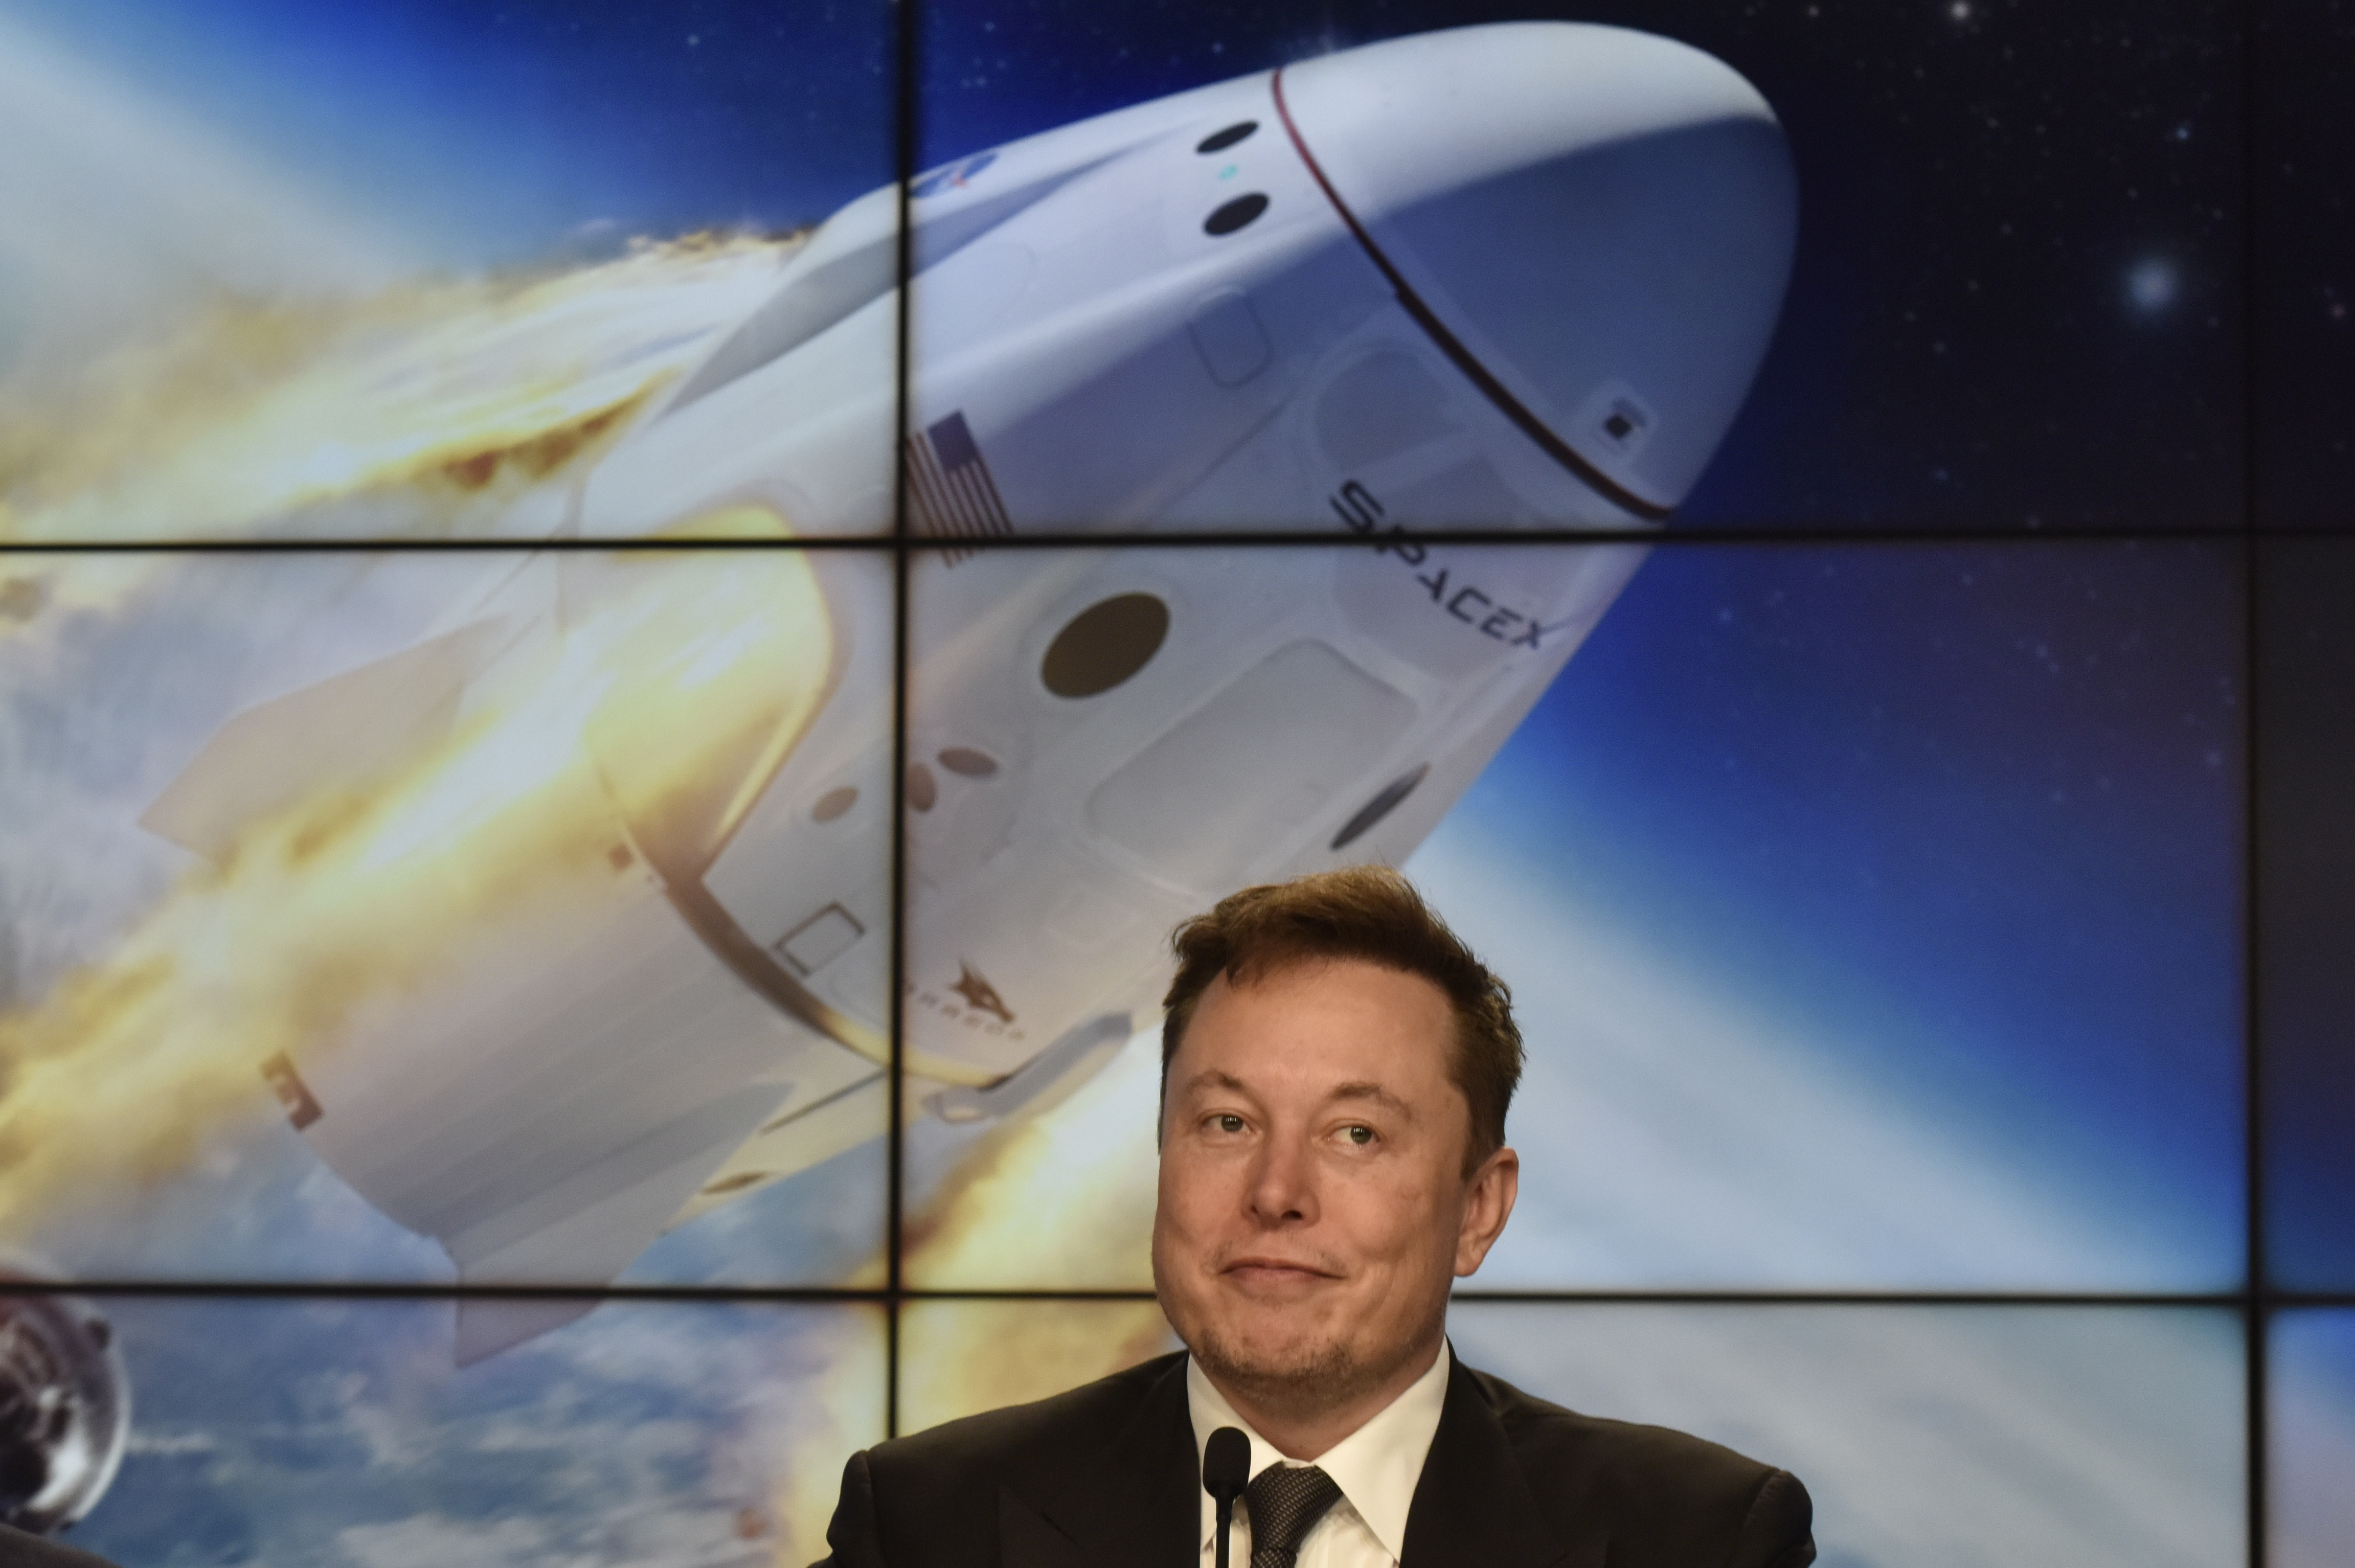 SpaceX founder and chief engineer Elon Musk attends a post-launch news conference to discuss the  SpaceX Crew Dragon astronaut capsule in-flight abort test at the Kennedy Space Center in Cape Canaveral, Florida, U.S. January 19, 2020. REUTERS/Steve Nesius